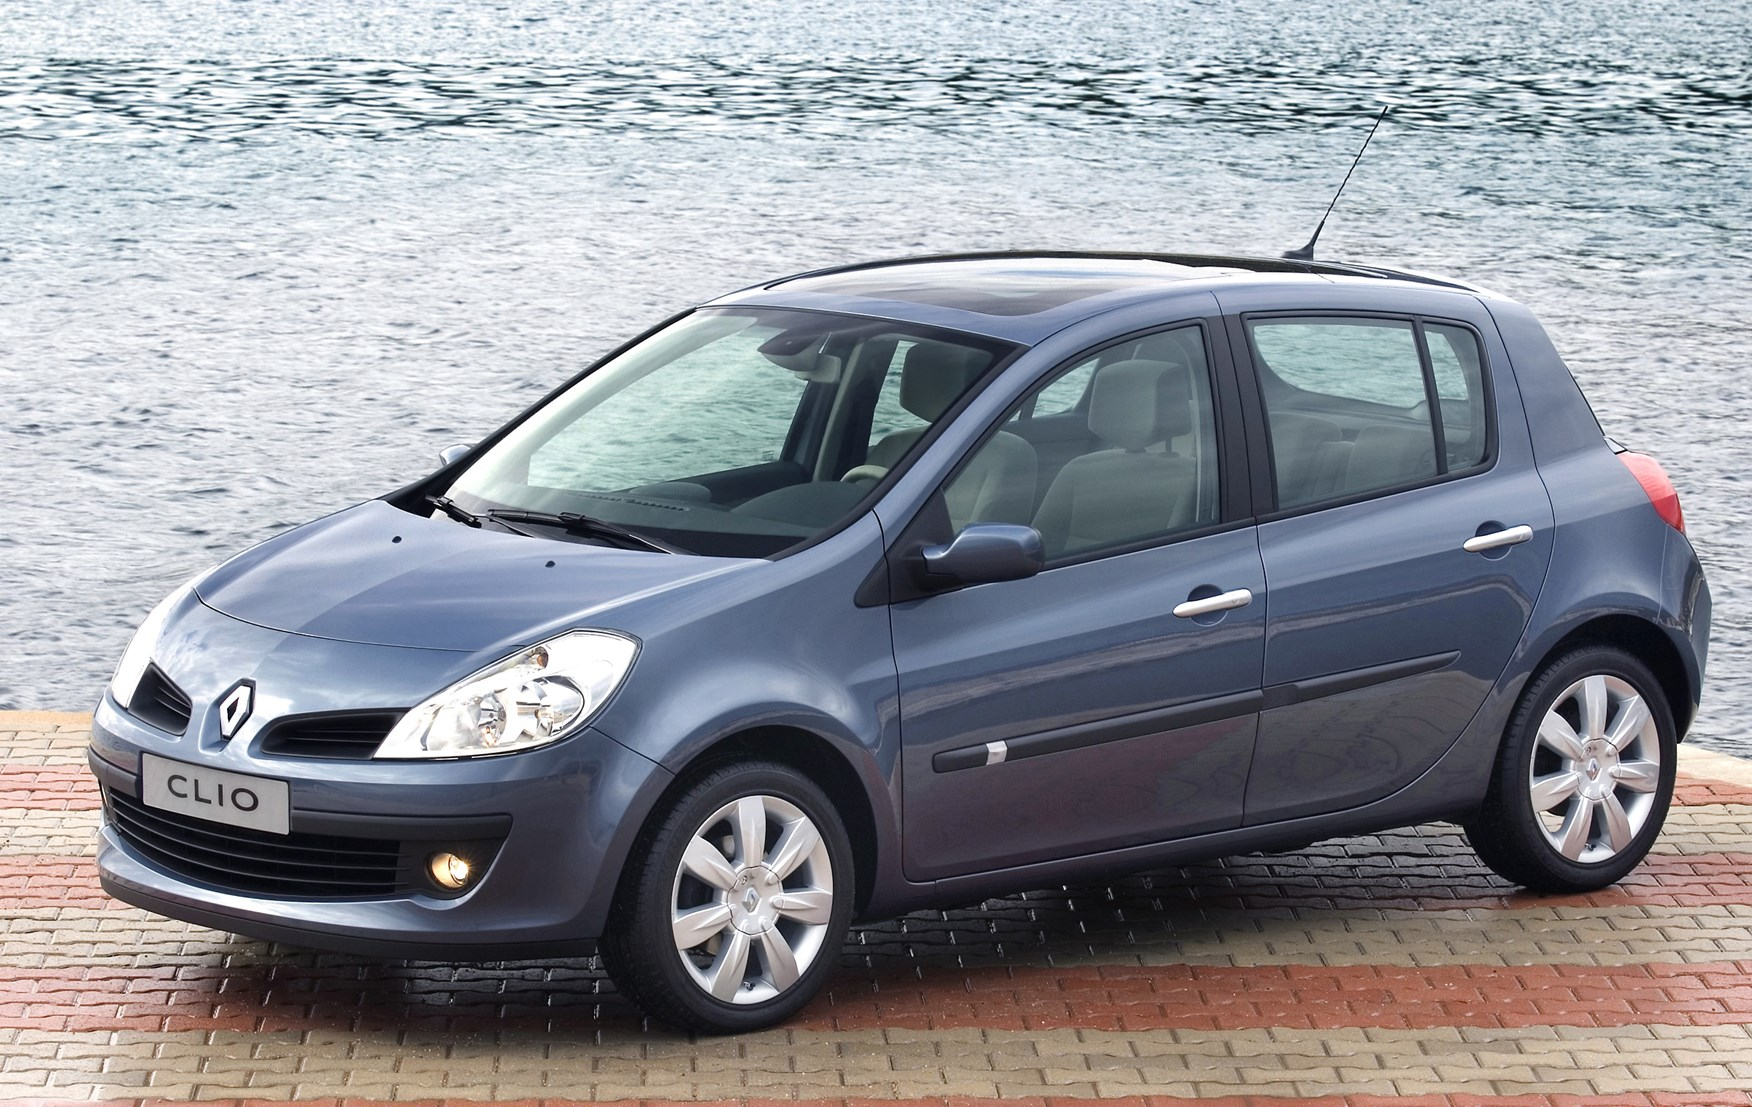 renault clio hatchback 2005 2012 photos parkers. Black Bedroom Furniture Sets. Home Design Ideas